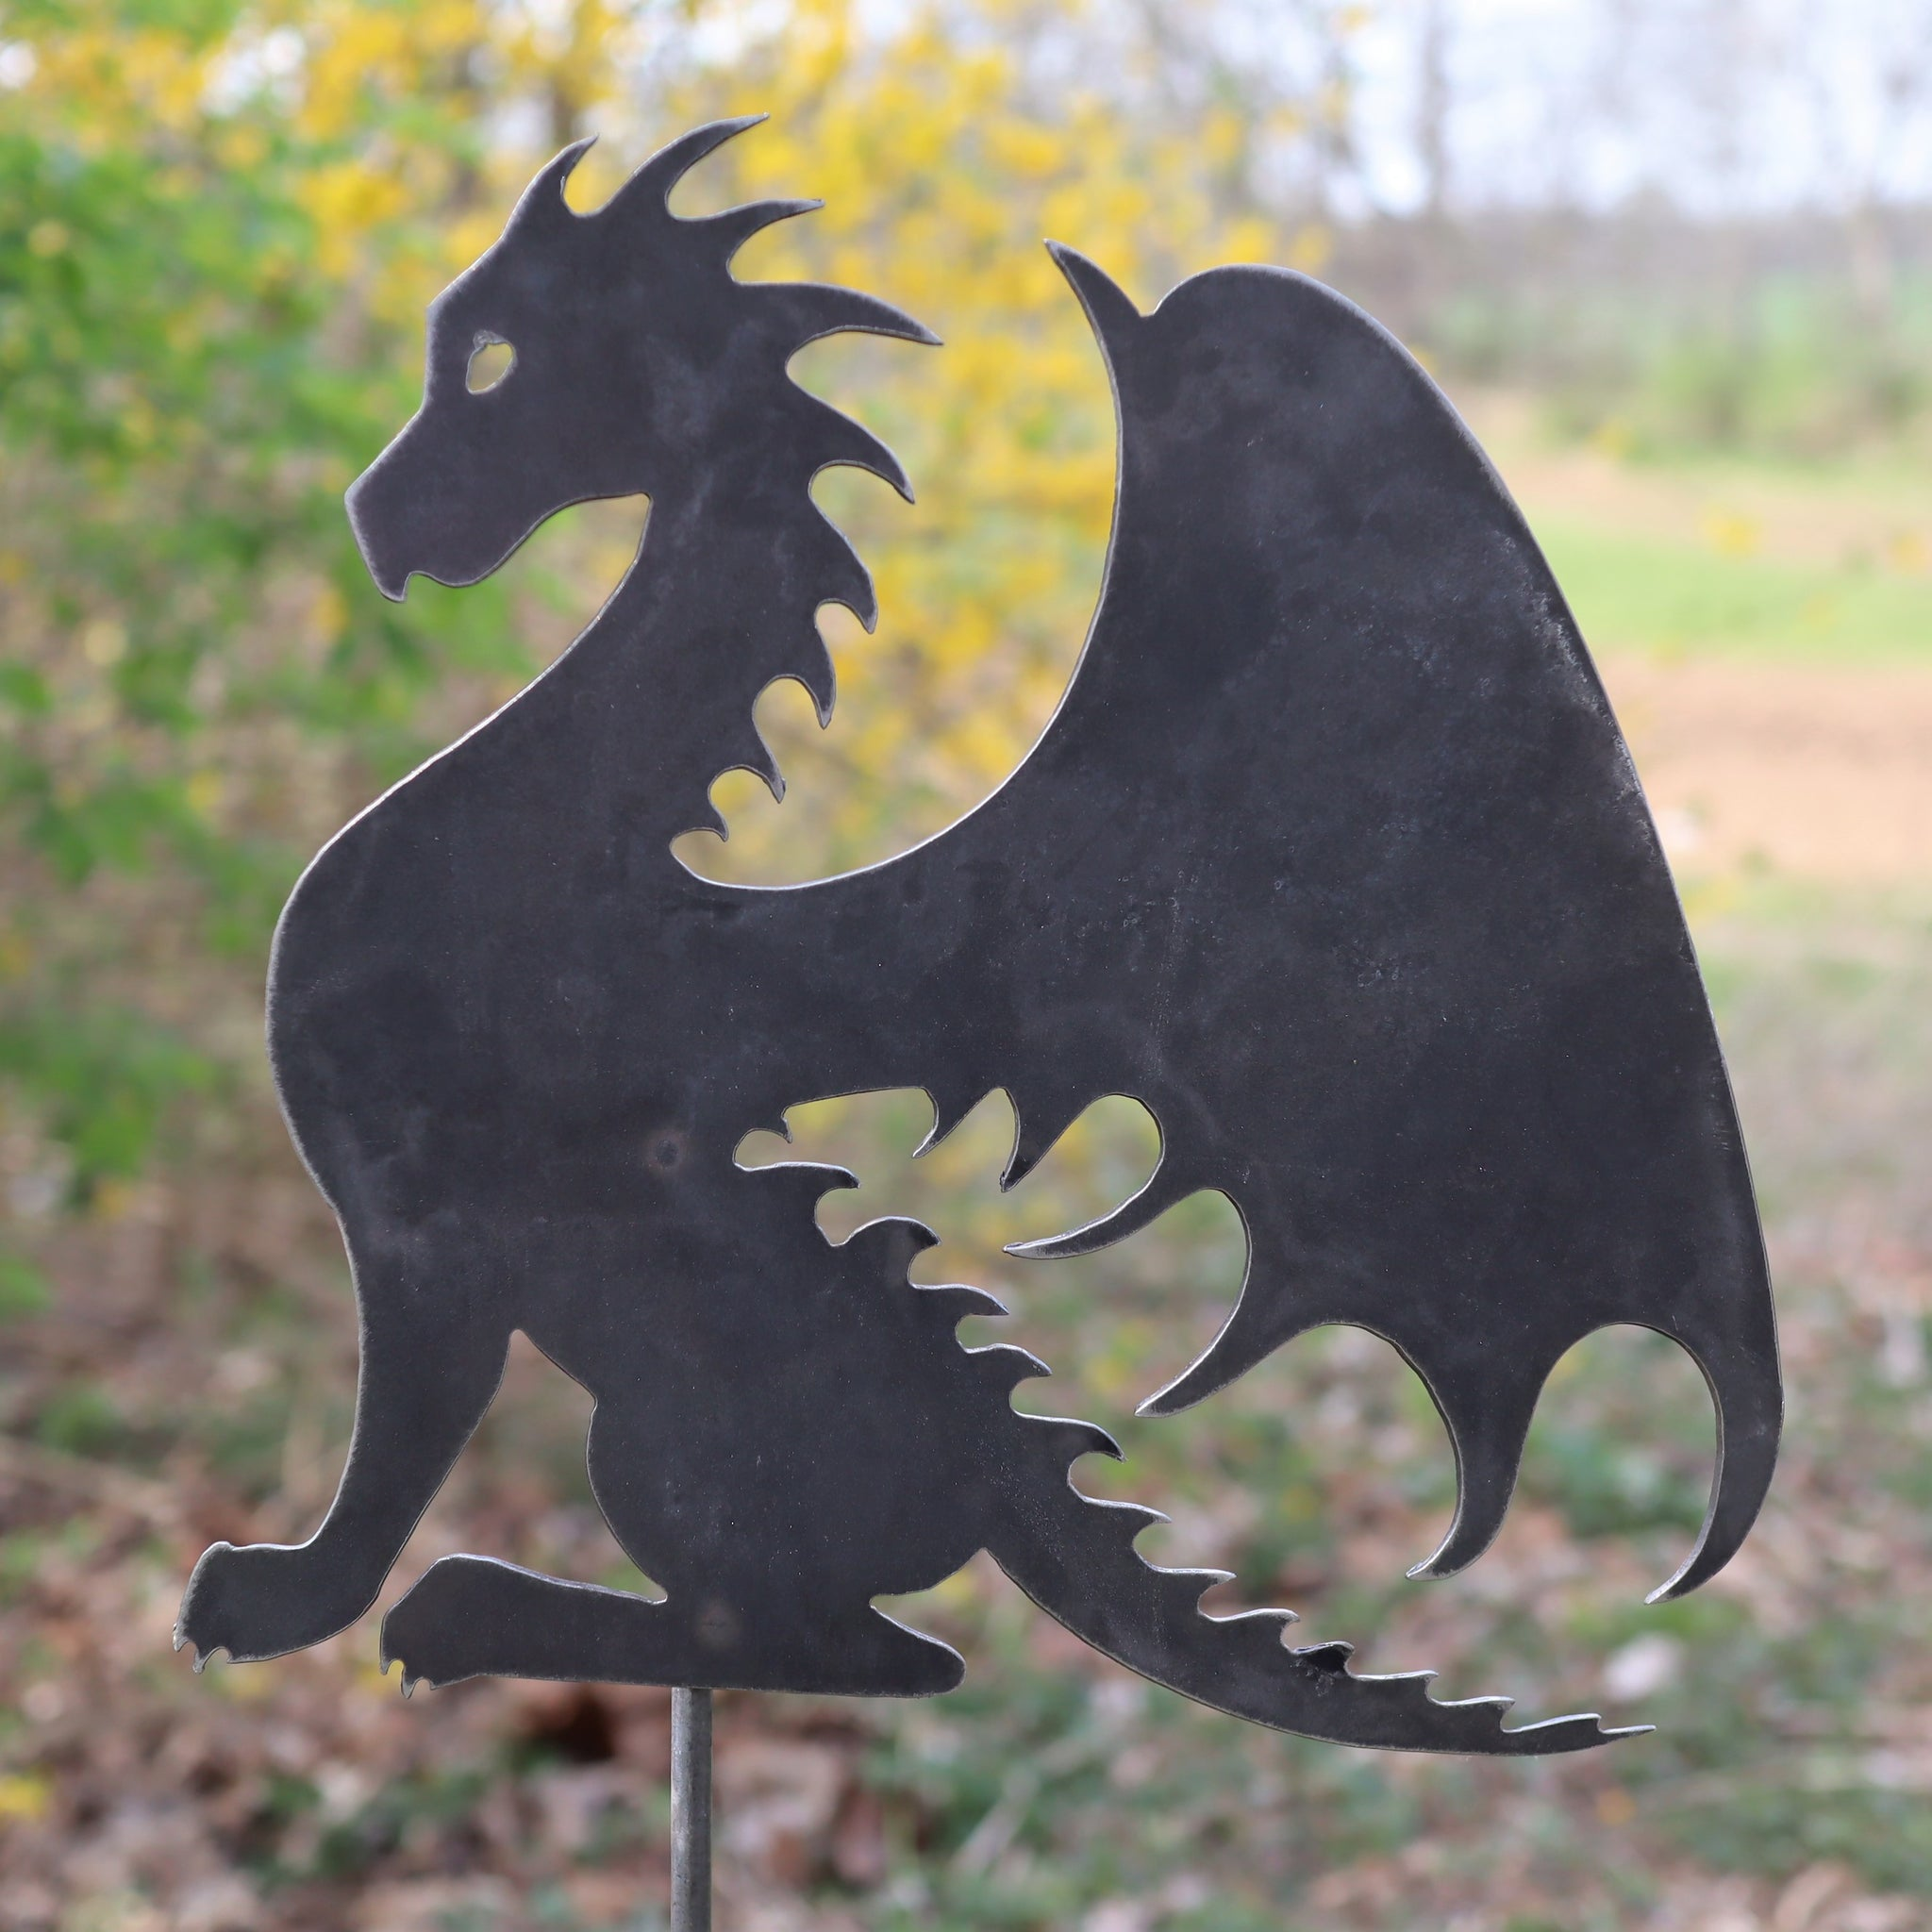 Metal Dragon Garden Stake - Steel Gardening Decor - Fantasy Yard Art Marker